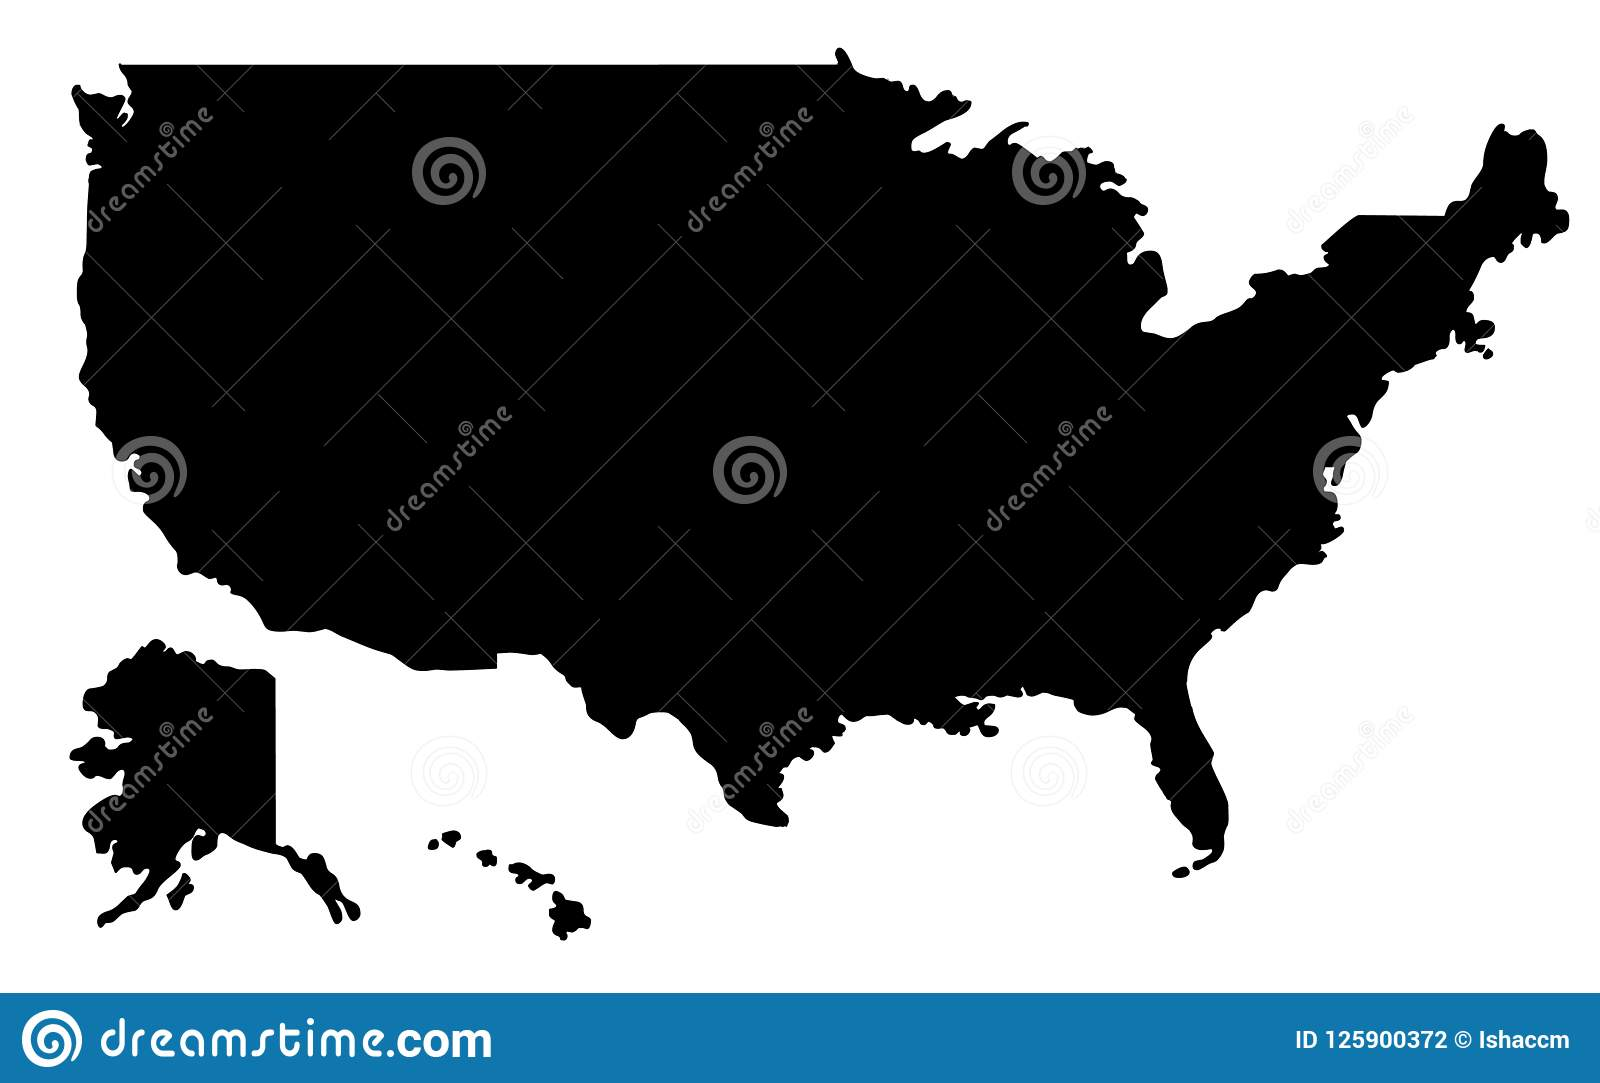 United States Of America Map Silhouette.Map Of America ... on usa map va, usa map sd, usa map dc, usa map in milwaukee, usa map of cincinnati, usa map ai, usa map new jersey, usa map re, usa map fl, usa map louisiana, usa map springfield, usa map ke, usa map washington, usa map oh, usa map indiana, usa map chicago, usa map ia,